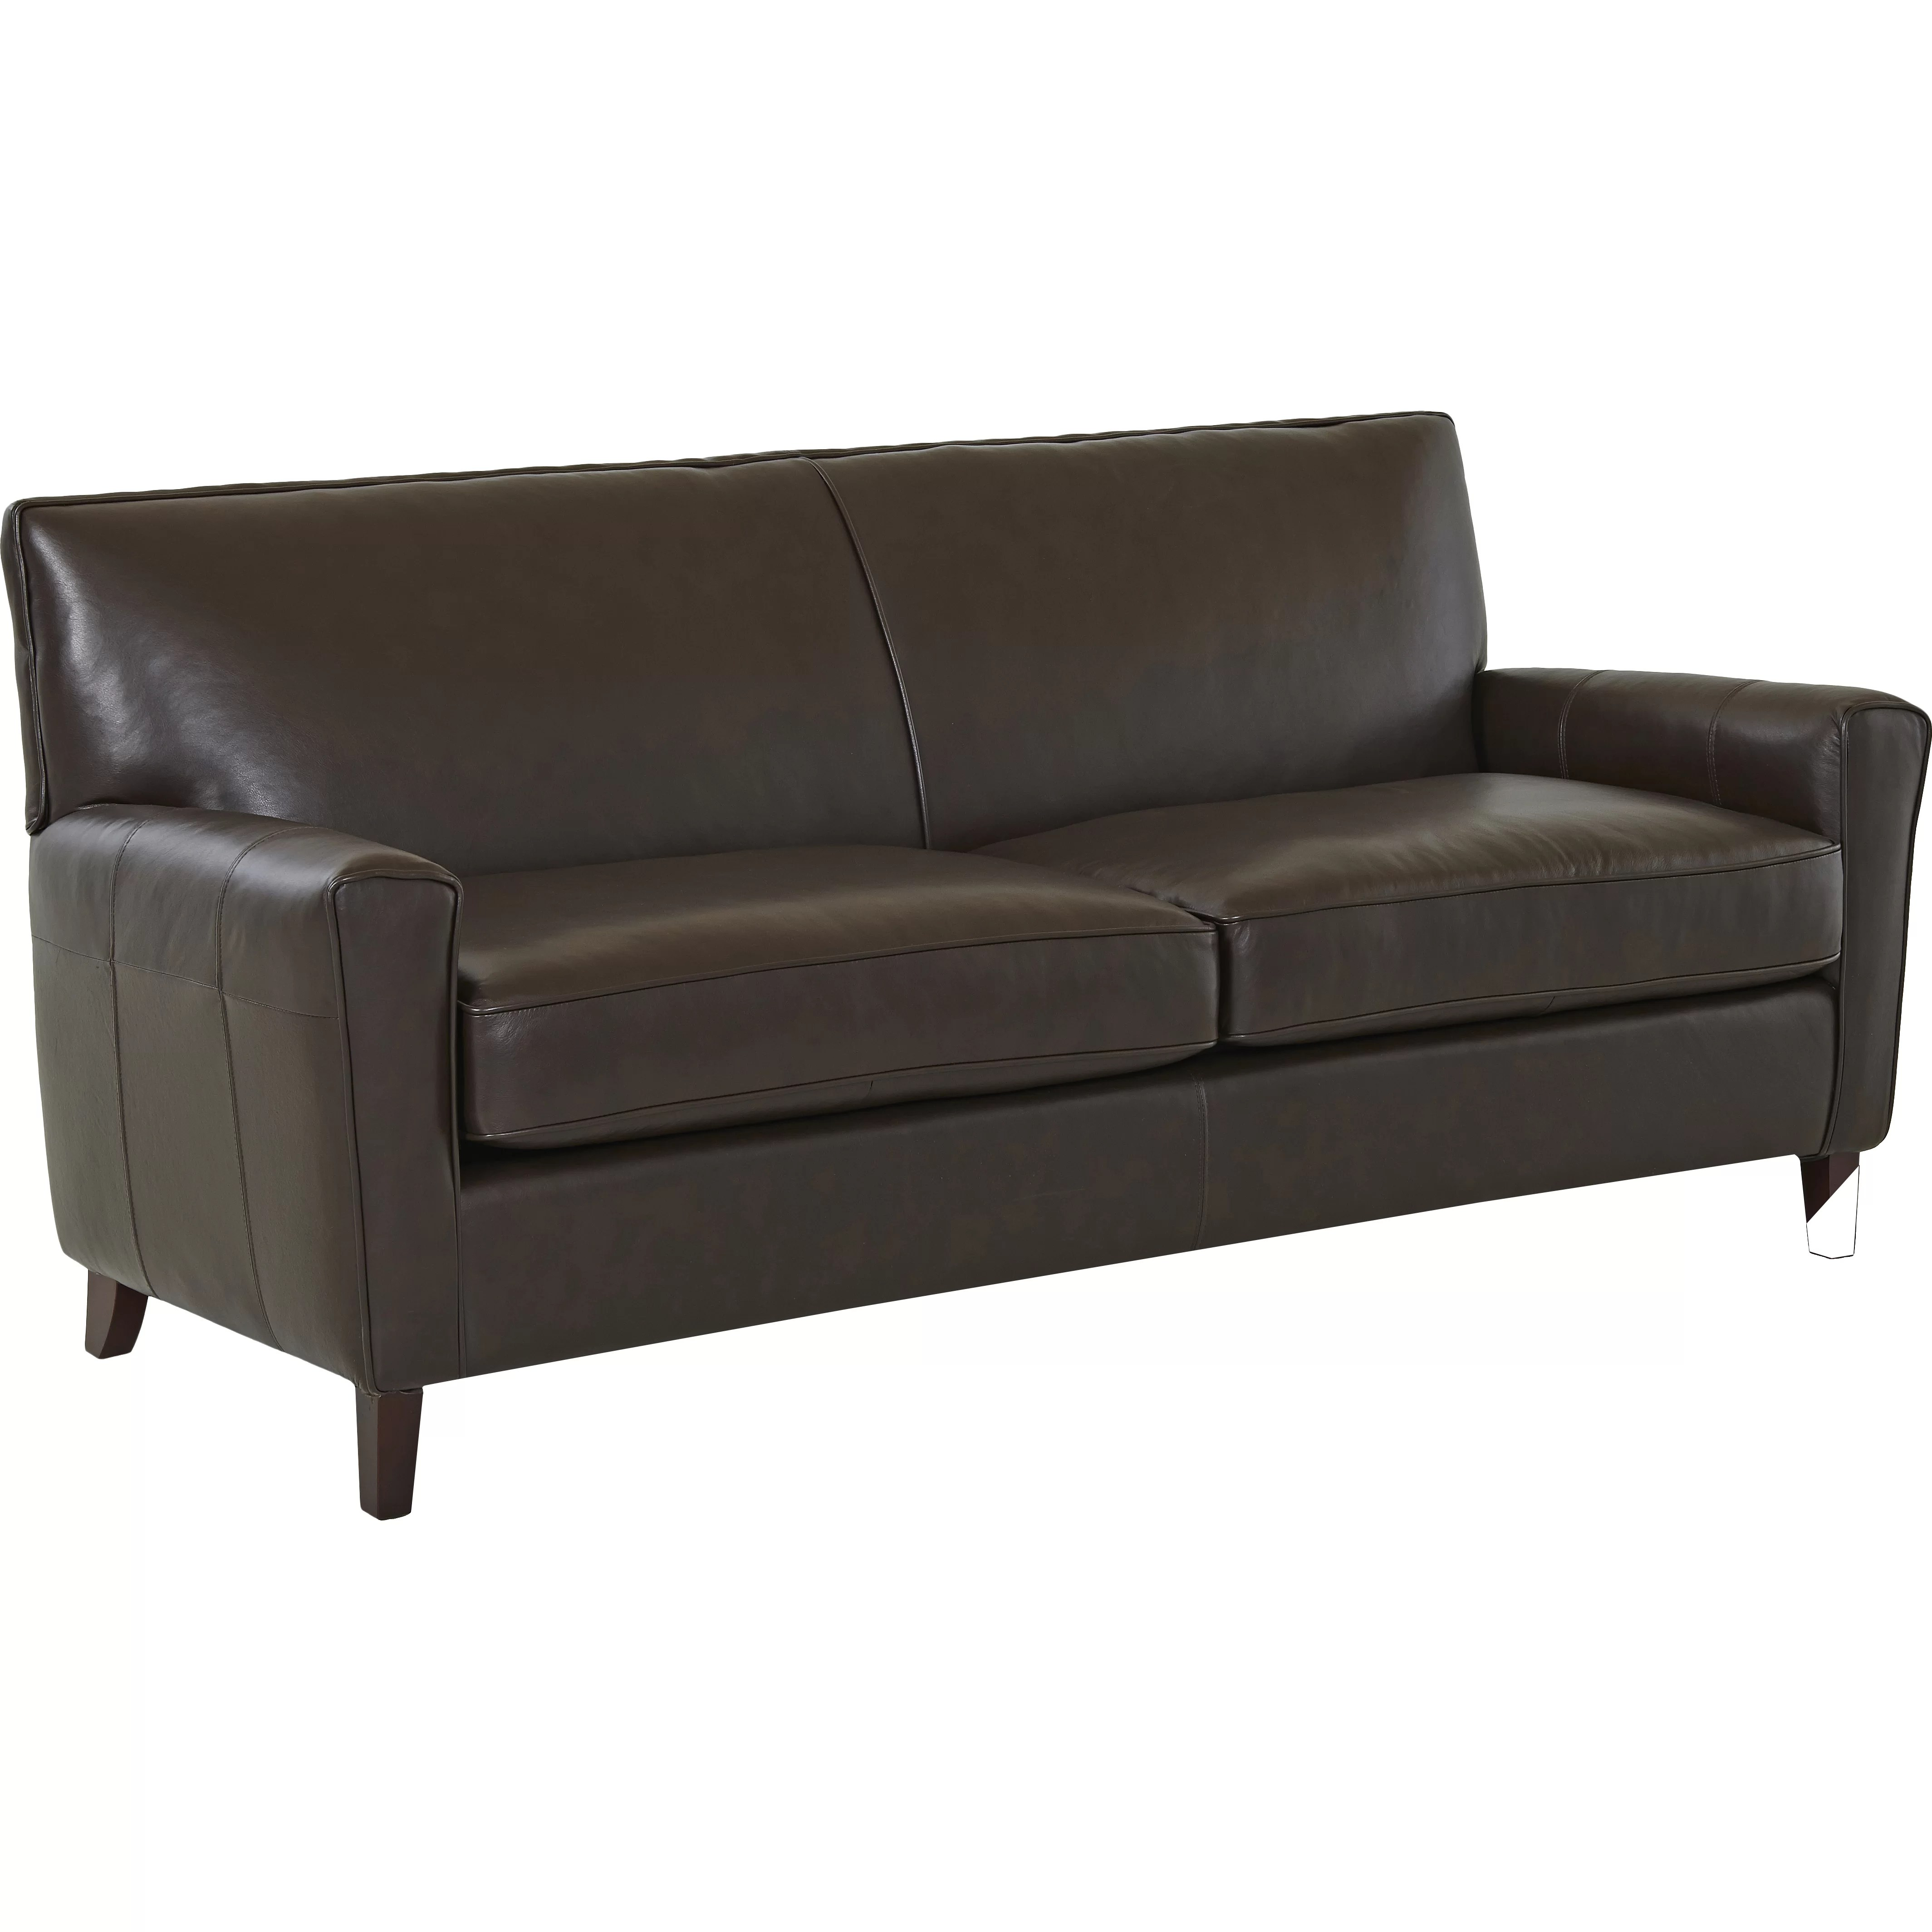 grayson sofa bed birch lane jameson review wayfair custom upholstery leather and reviews